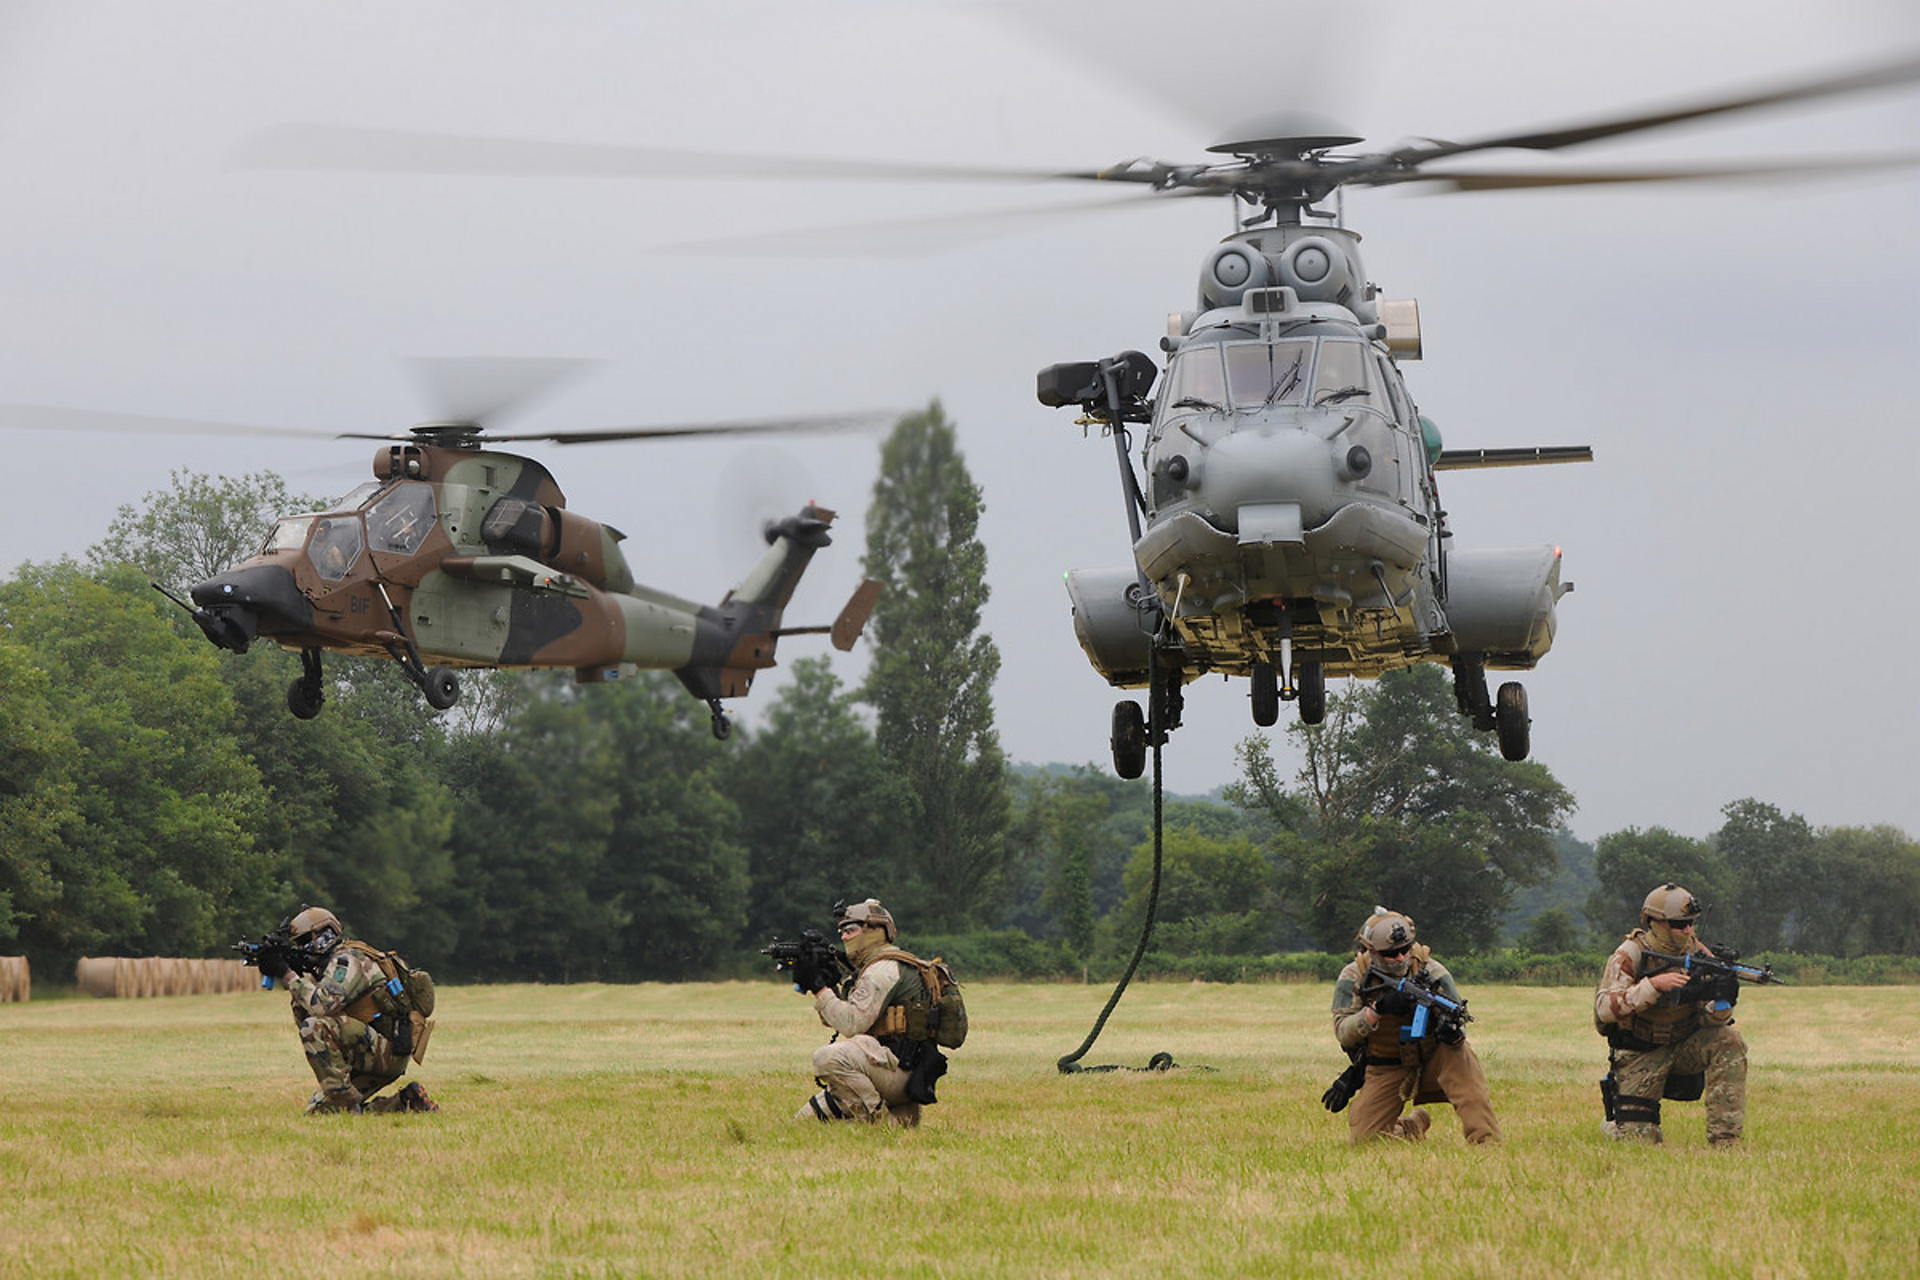 An H225M is shown during ascent with a Tiger HAD helicopter in the background.